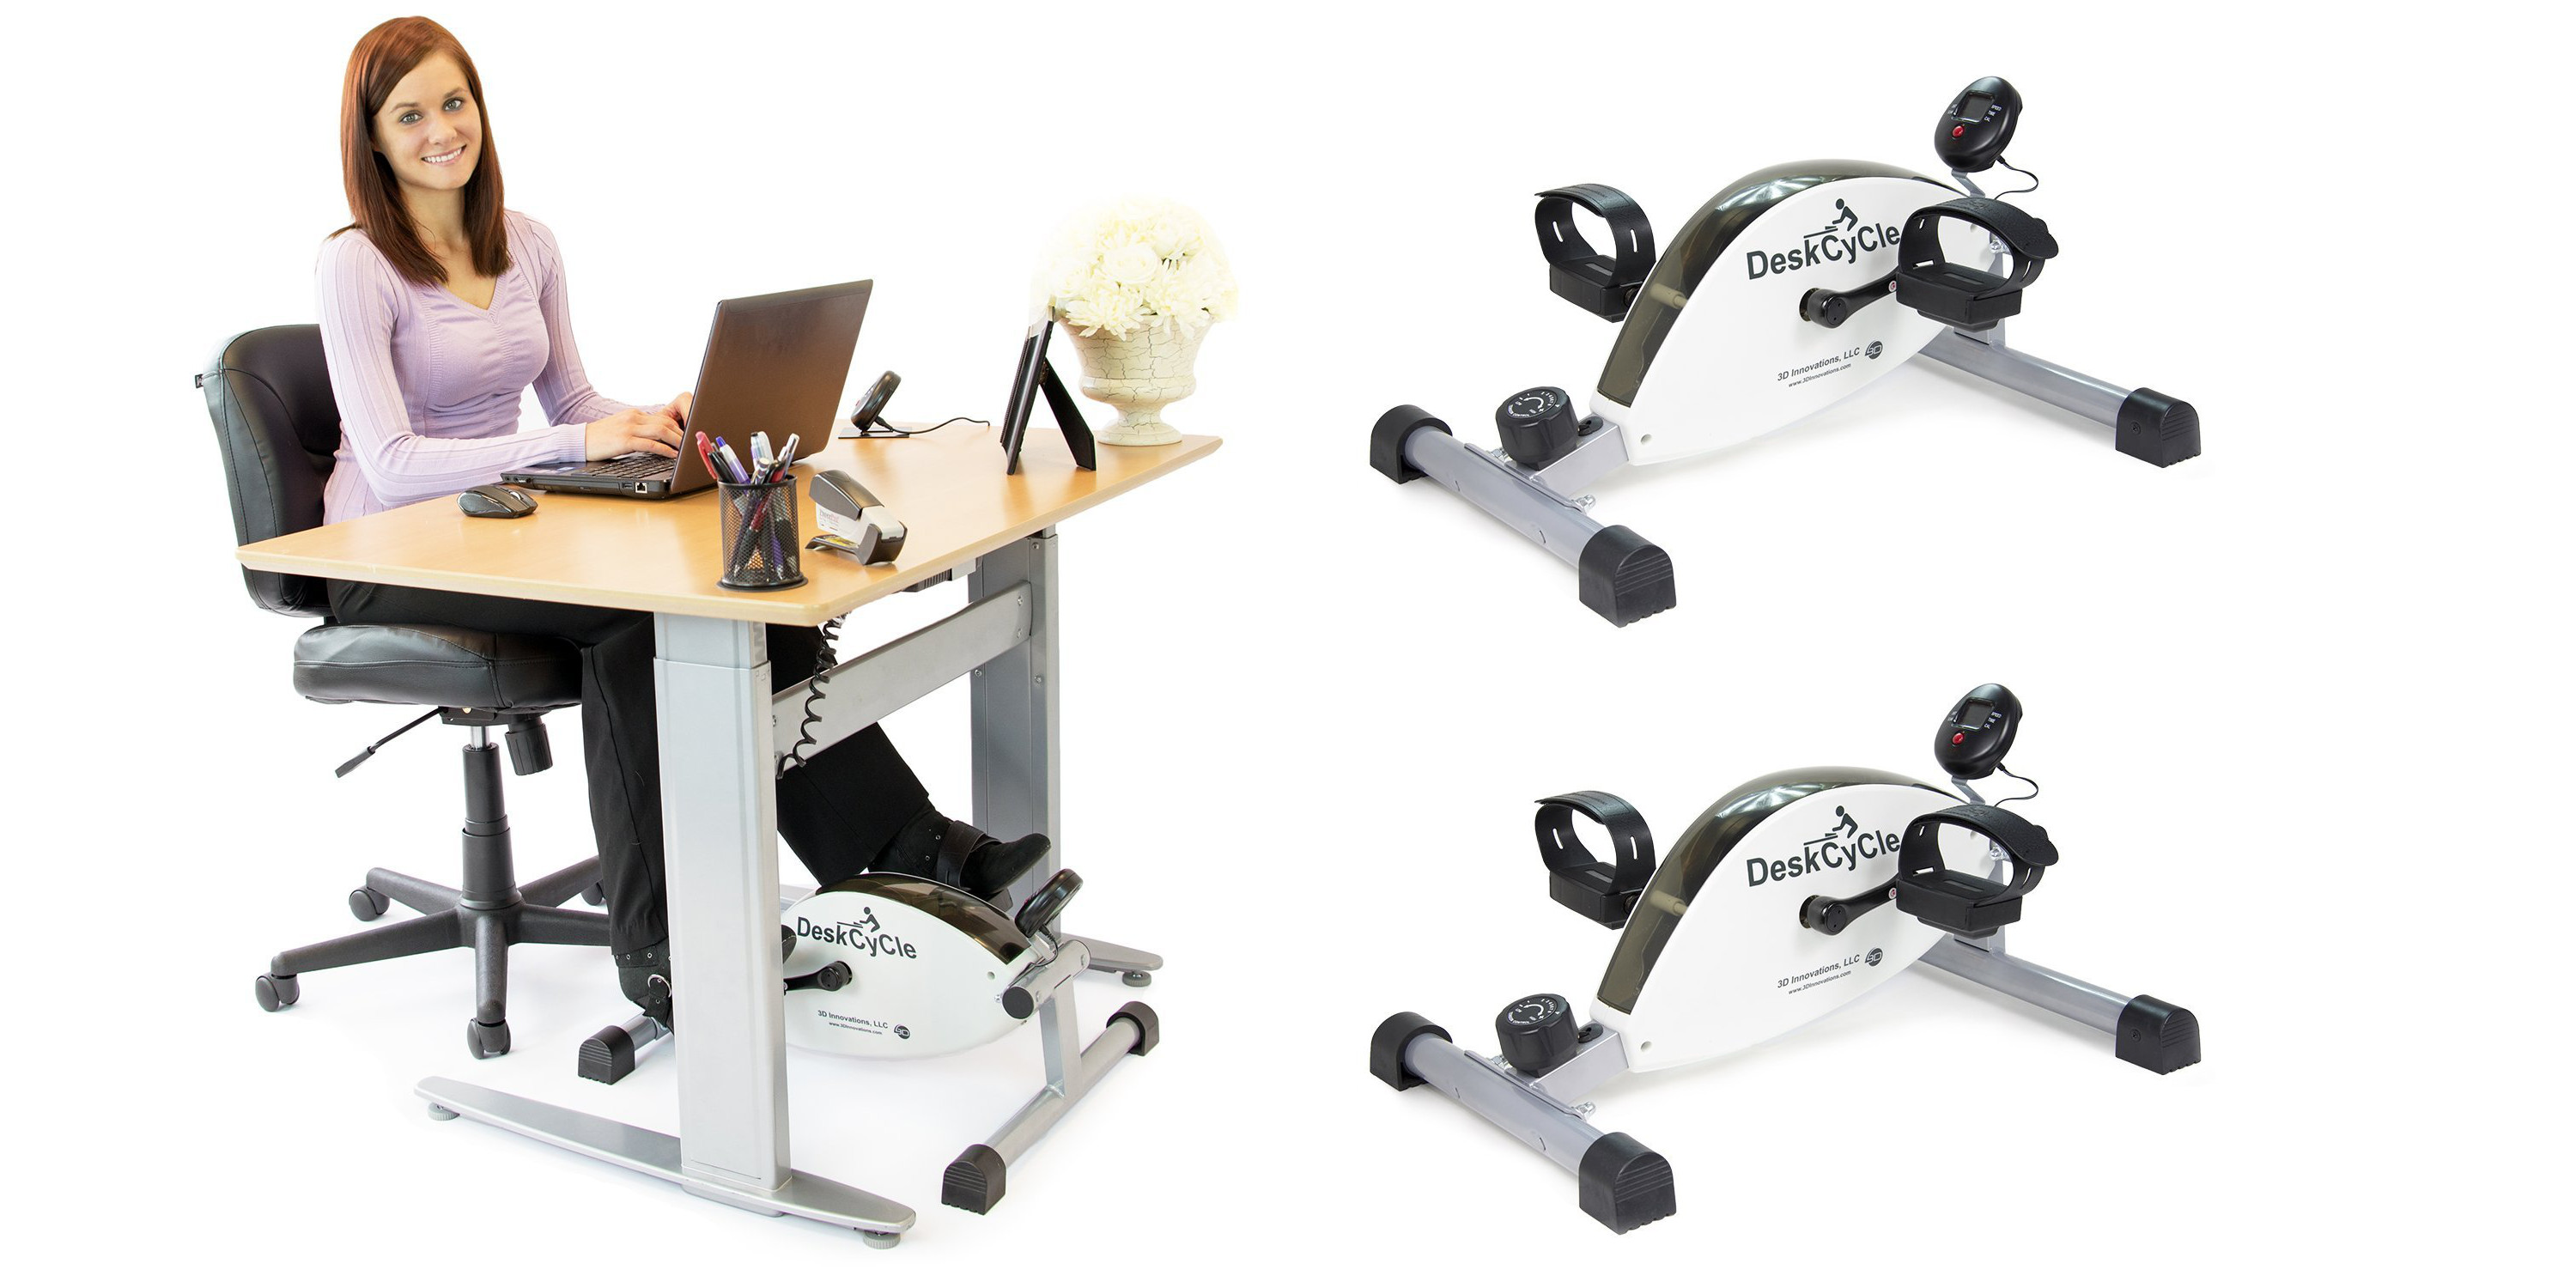 Incredible Keep Your Legs Movin W Deskcycles Under Desk Exercise Short Links Chair Design For Home Short Linksinfo